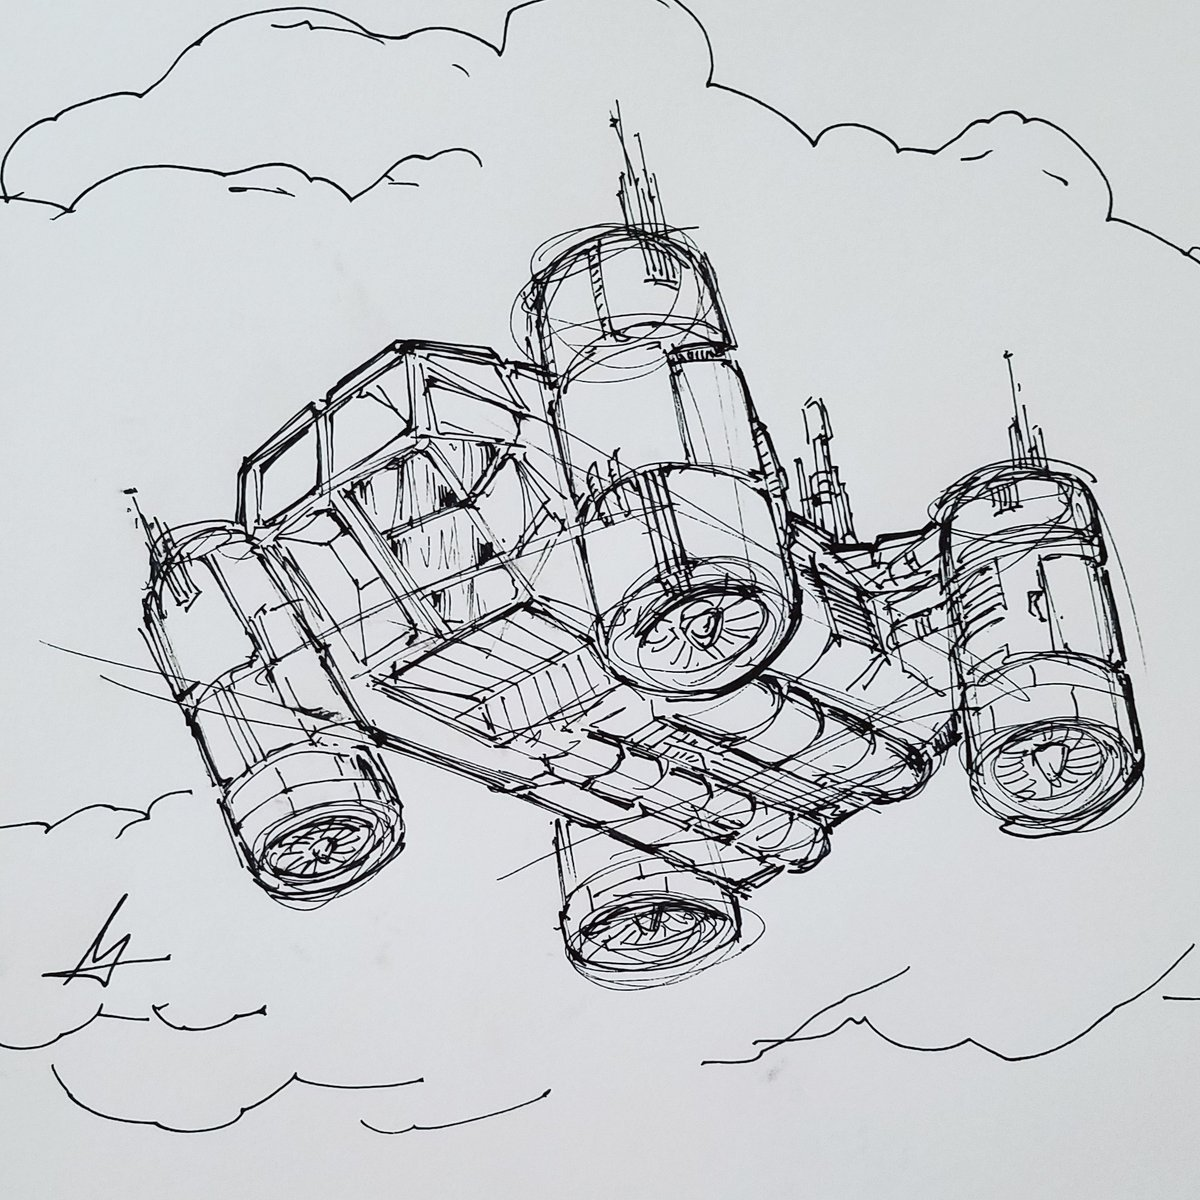 Heavy payload HOVERTOW, one of the vehicles in the story I'm writing. Quick sketch before I turn in for the day.  #drawing #industrialdesign #csulb #sketch #aircraft #vehicle #pen #productdesign #oldschool #distancenovel